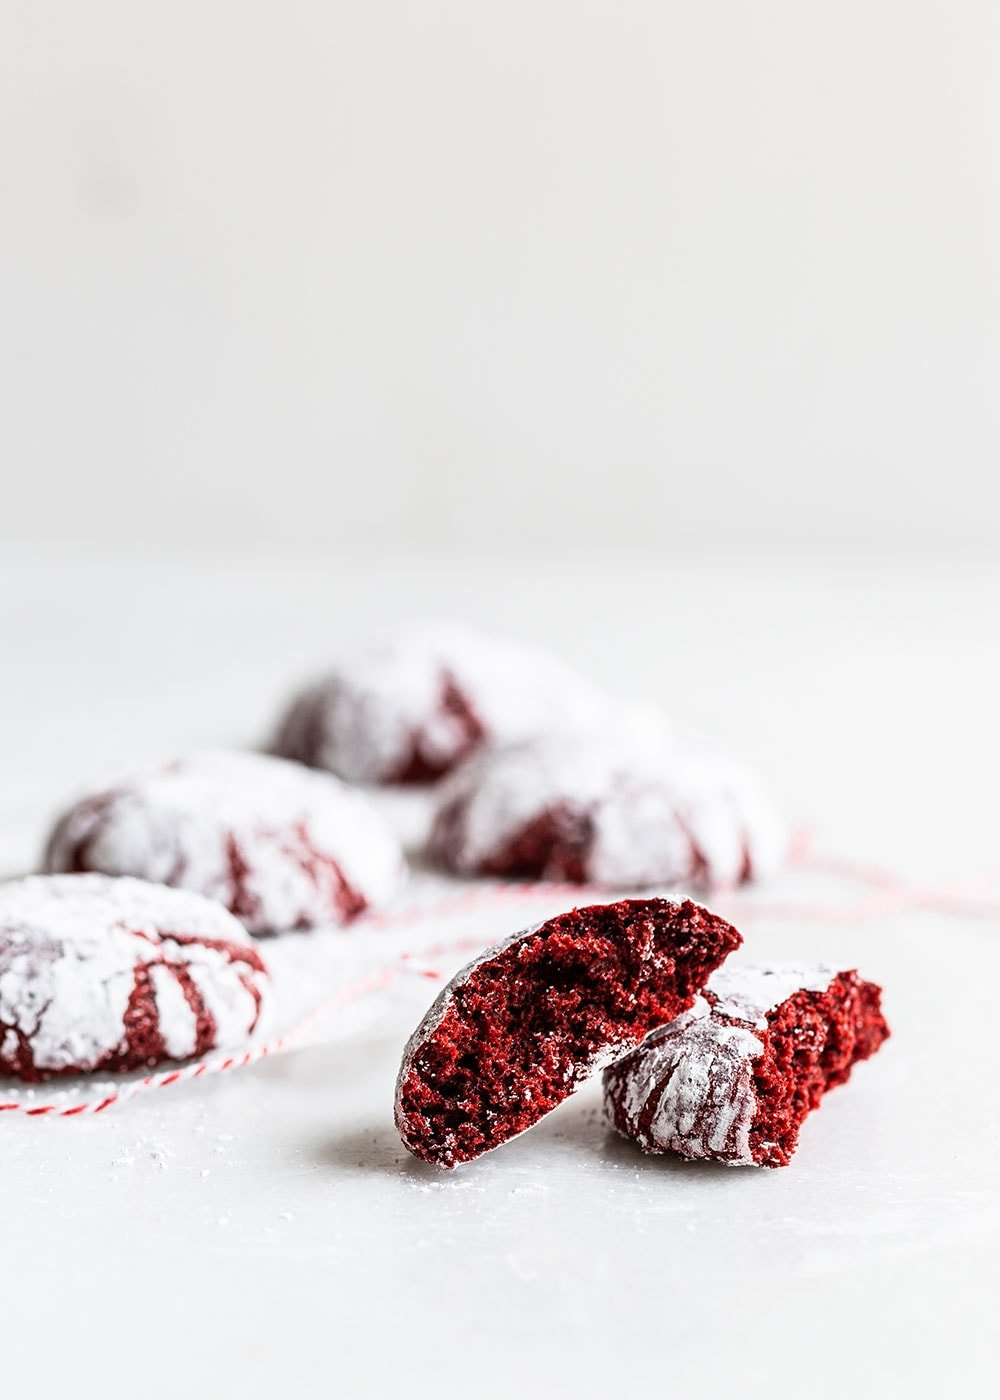 Red Velvet Crinkle cookie broken up to reveal soft interior